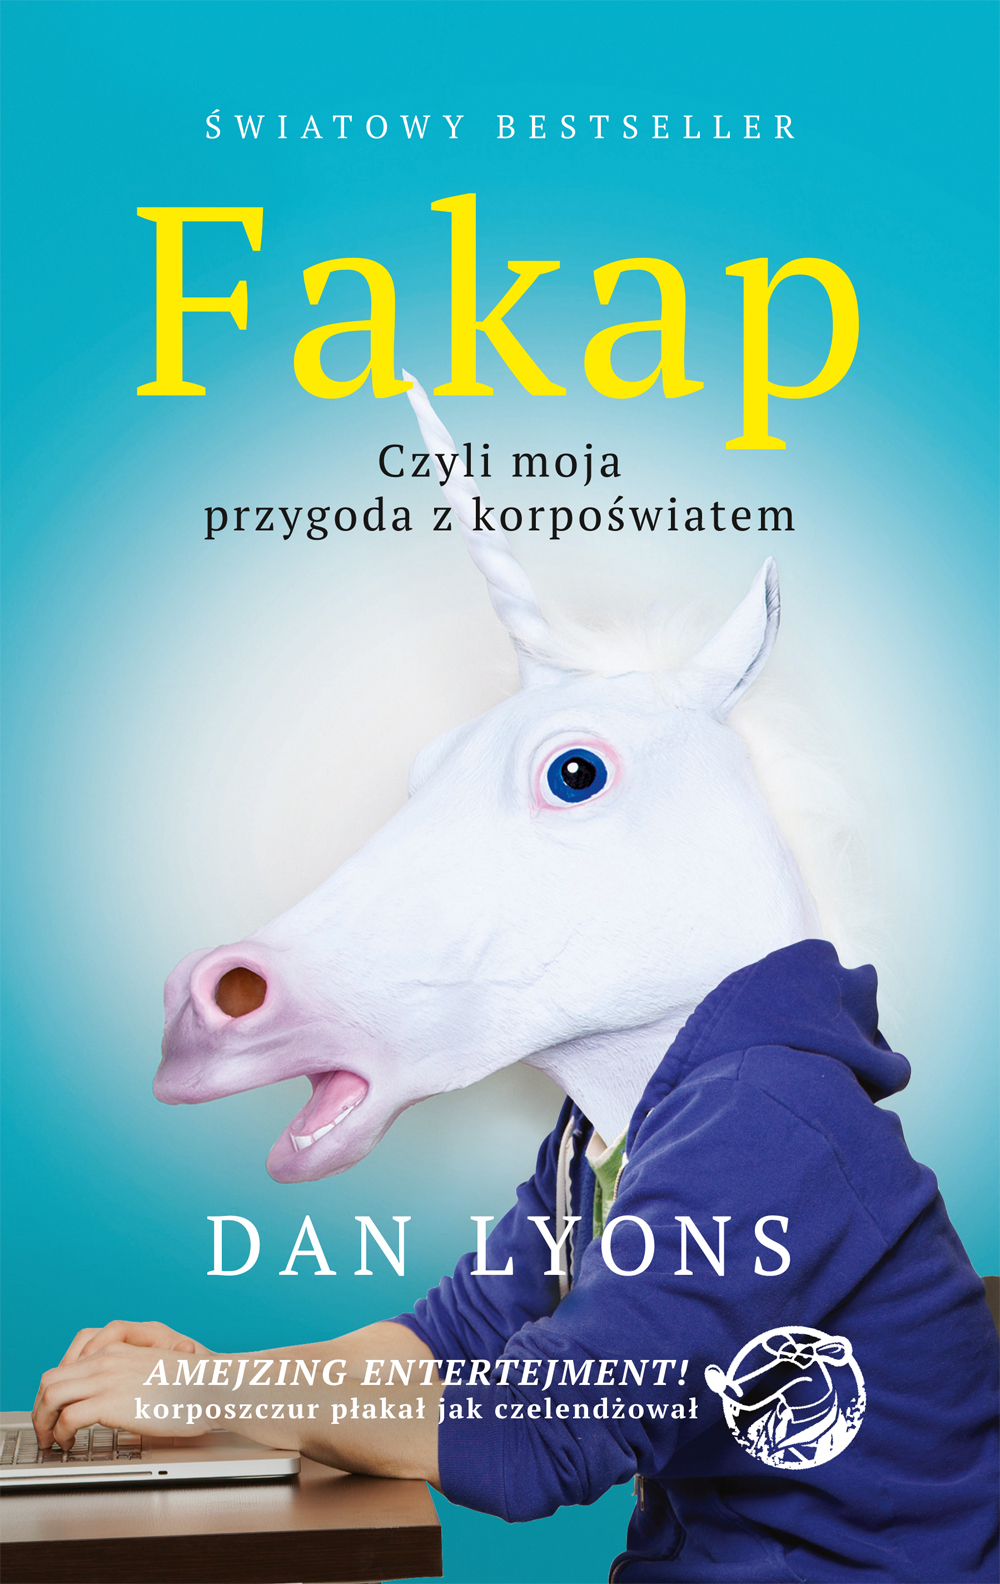 Lyons_Fakap_PRESS